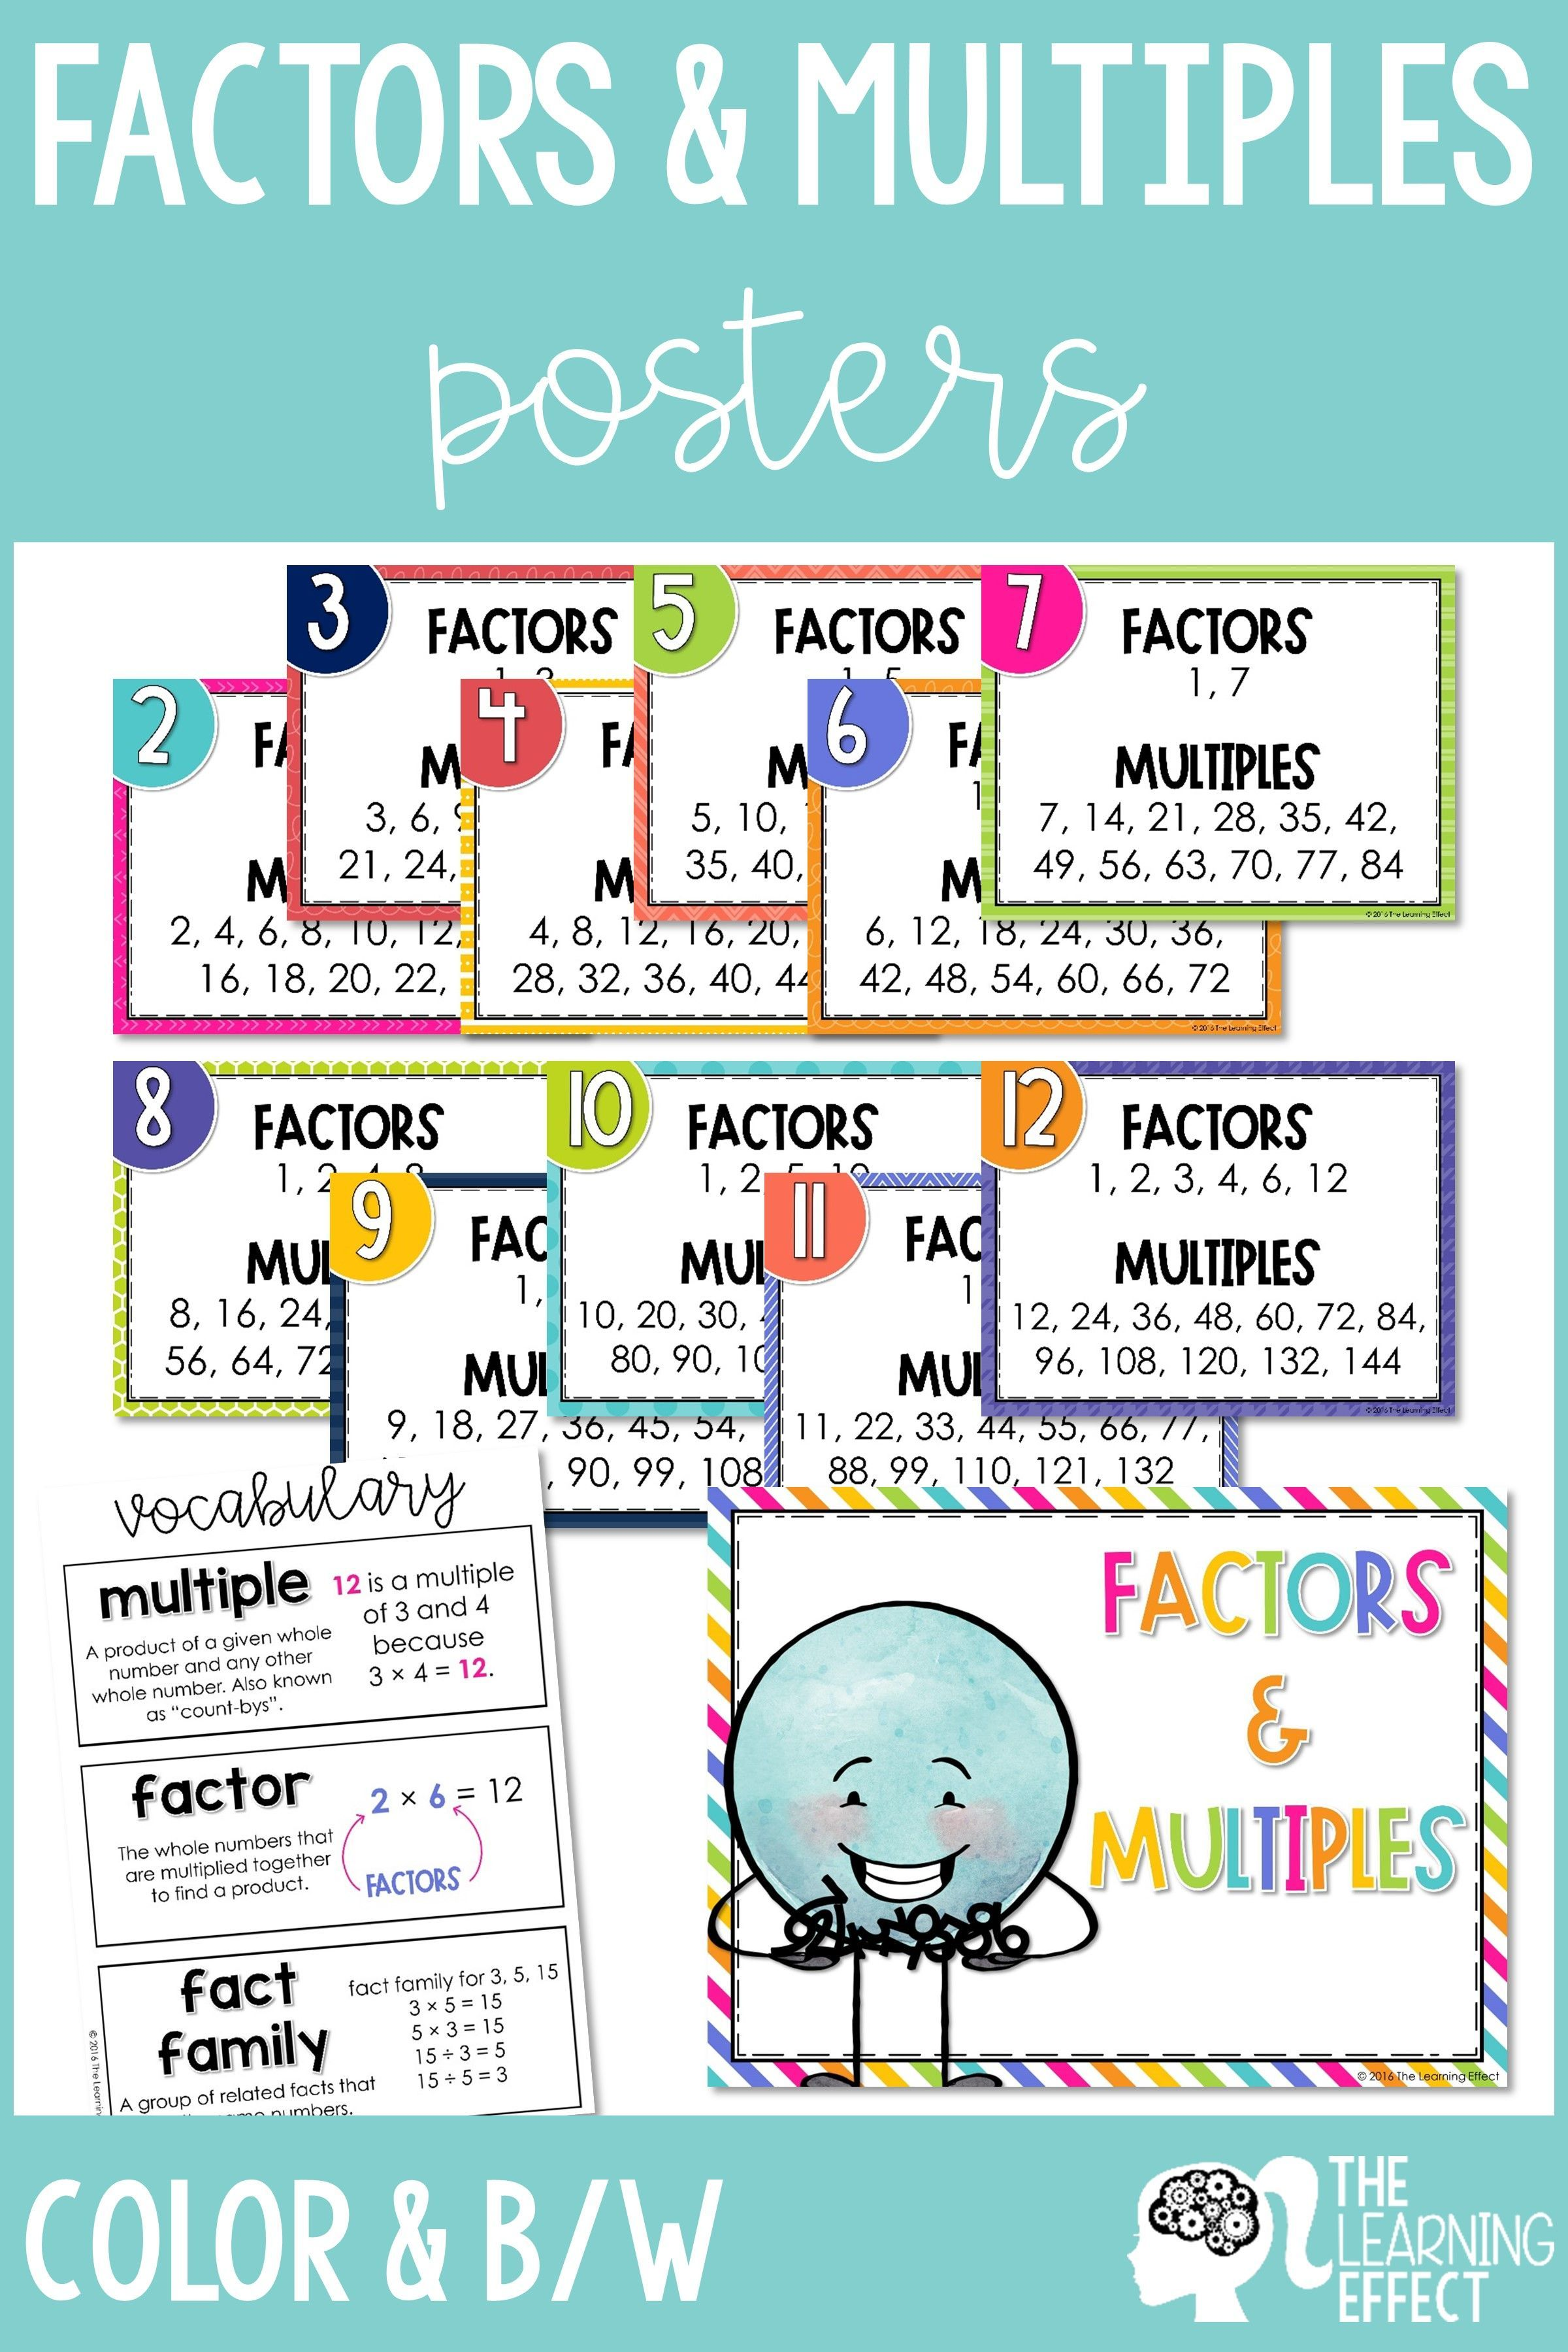 Are Your Students Learning Factors And Multiples These Posters Are Beneficial For Students Lear Factors And Multiples Teaching Multiplication Student Learning